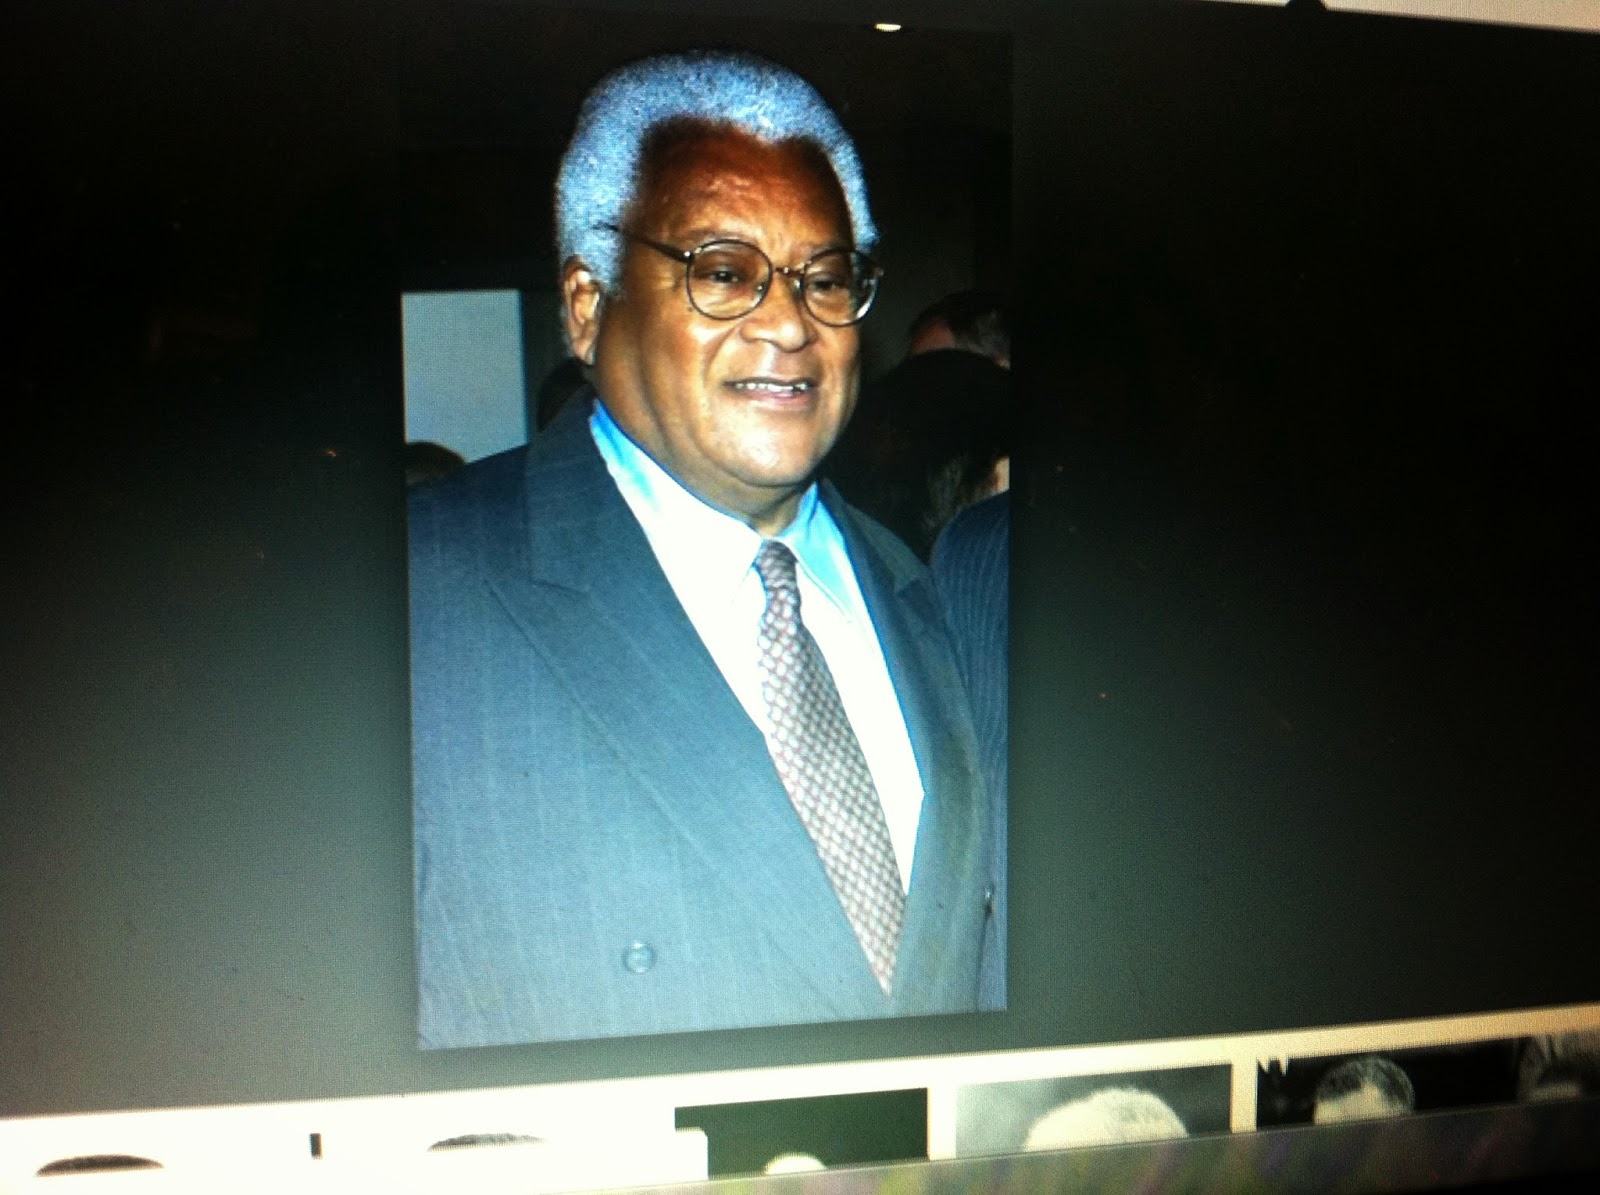 james lawson View james lawson's professional profile on linkedin linkedin is the world's largest business network, helping professionals like james lawson discover inside.